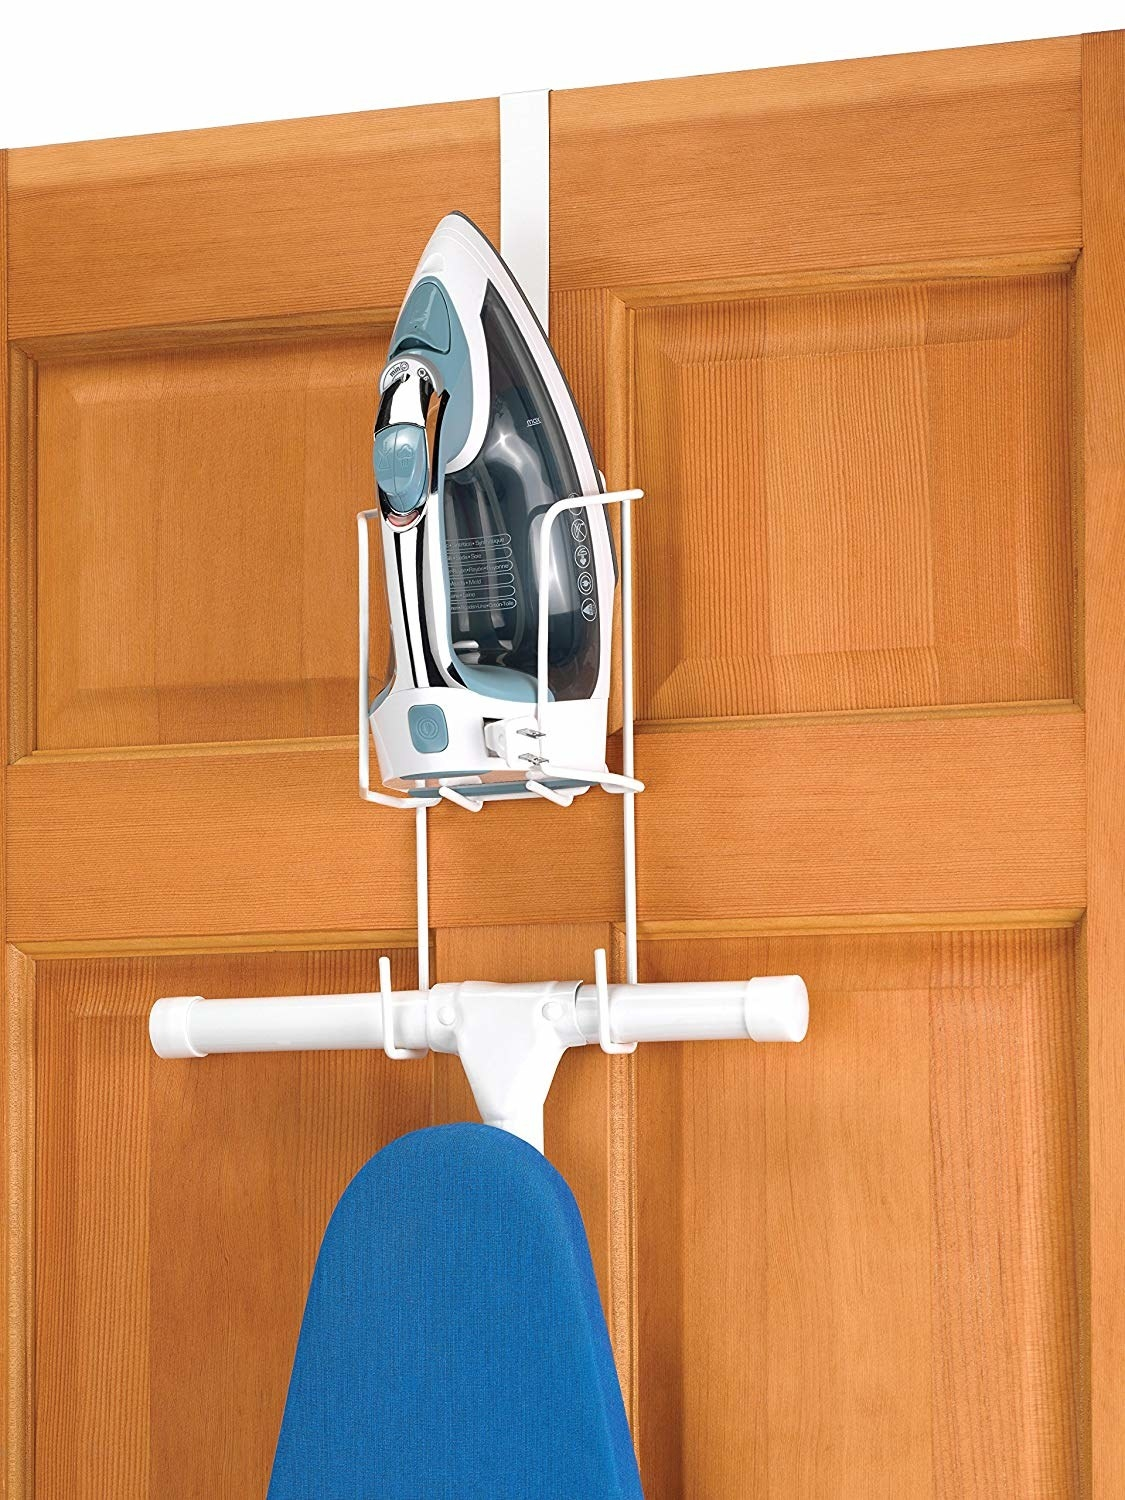 An iron sits in a rack hanging over the door, with hooks beneath it that hold the leg of an ironing board